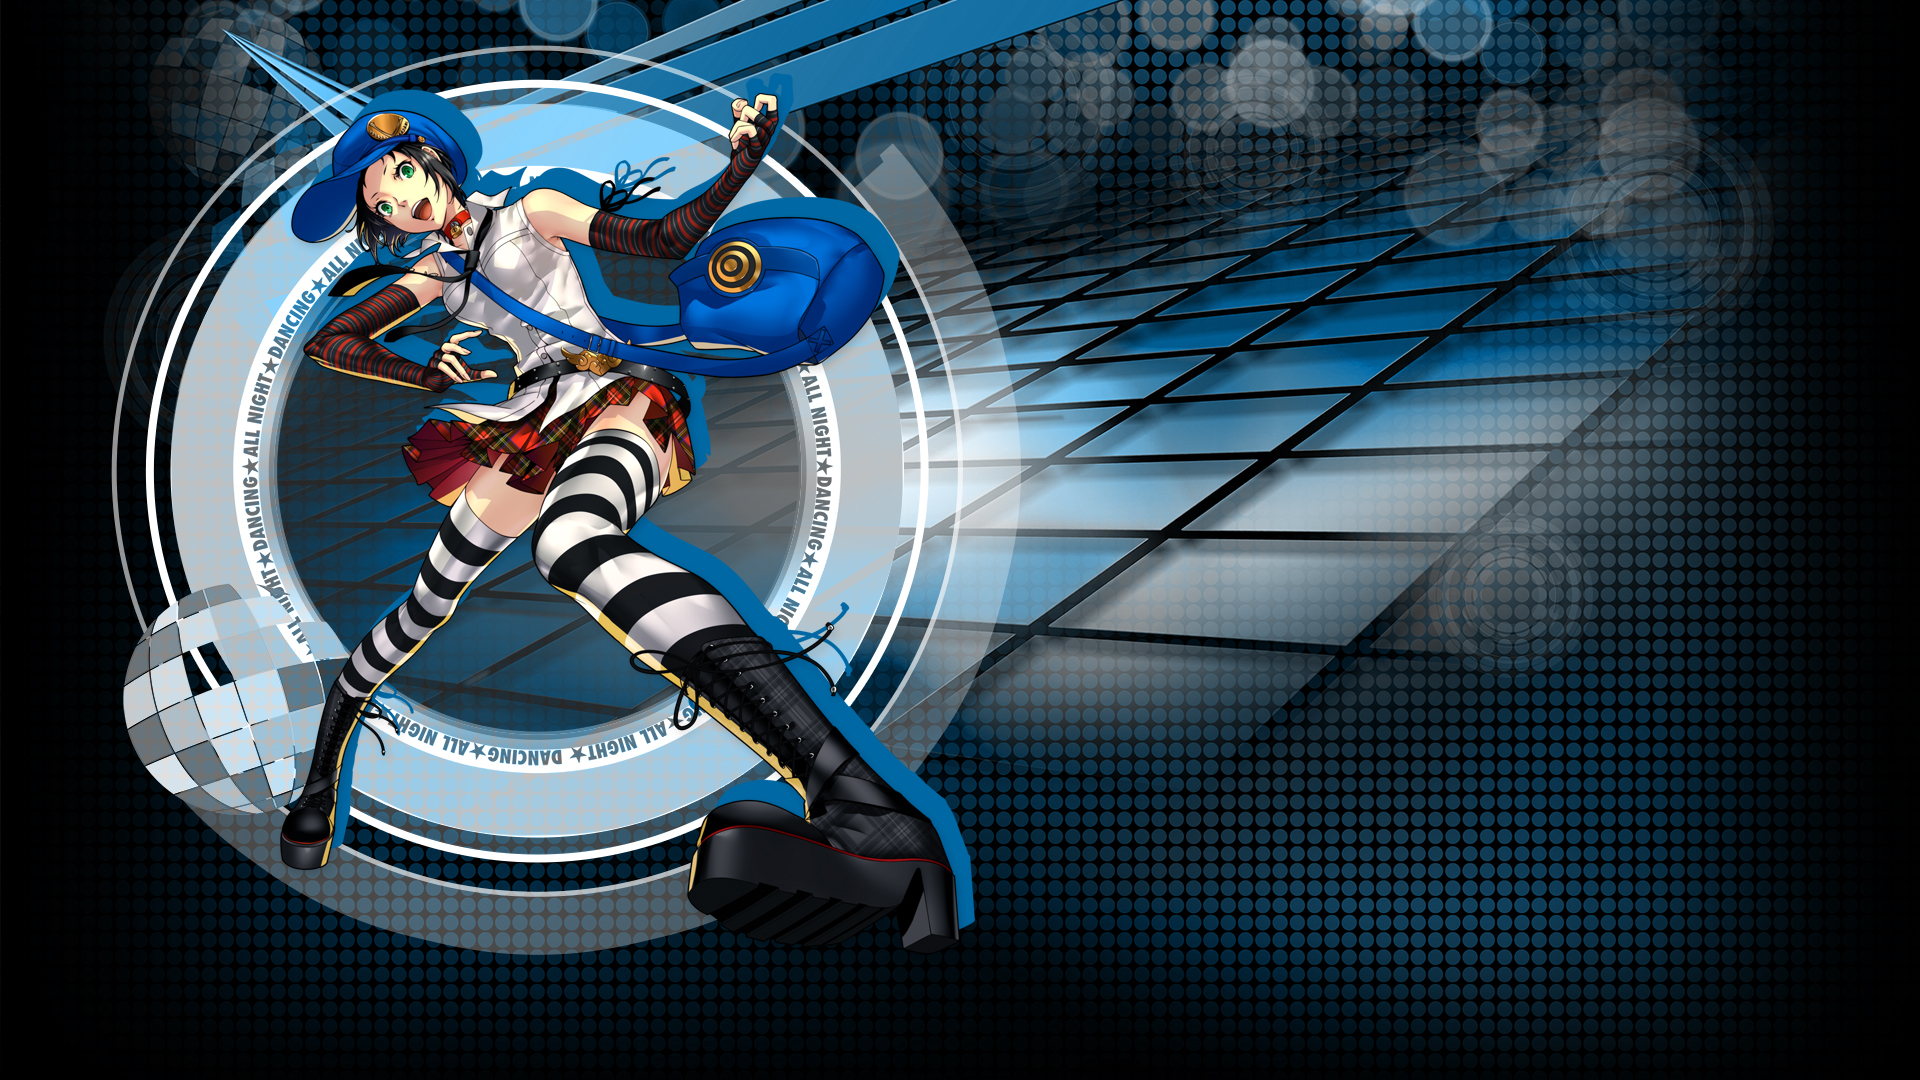 persona 4 dan marie hd wallpaper by seraharcana on